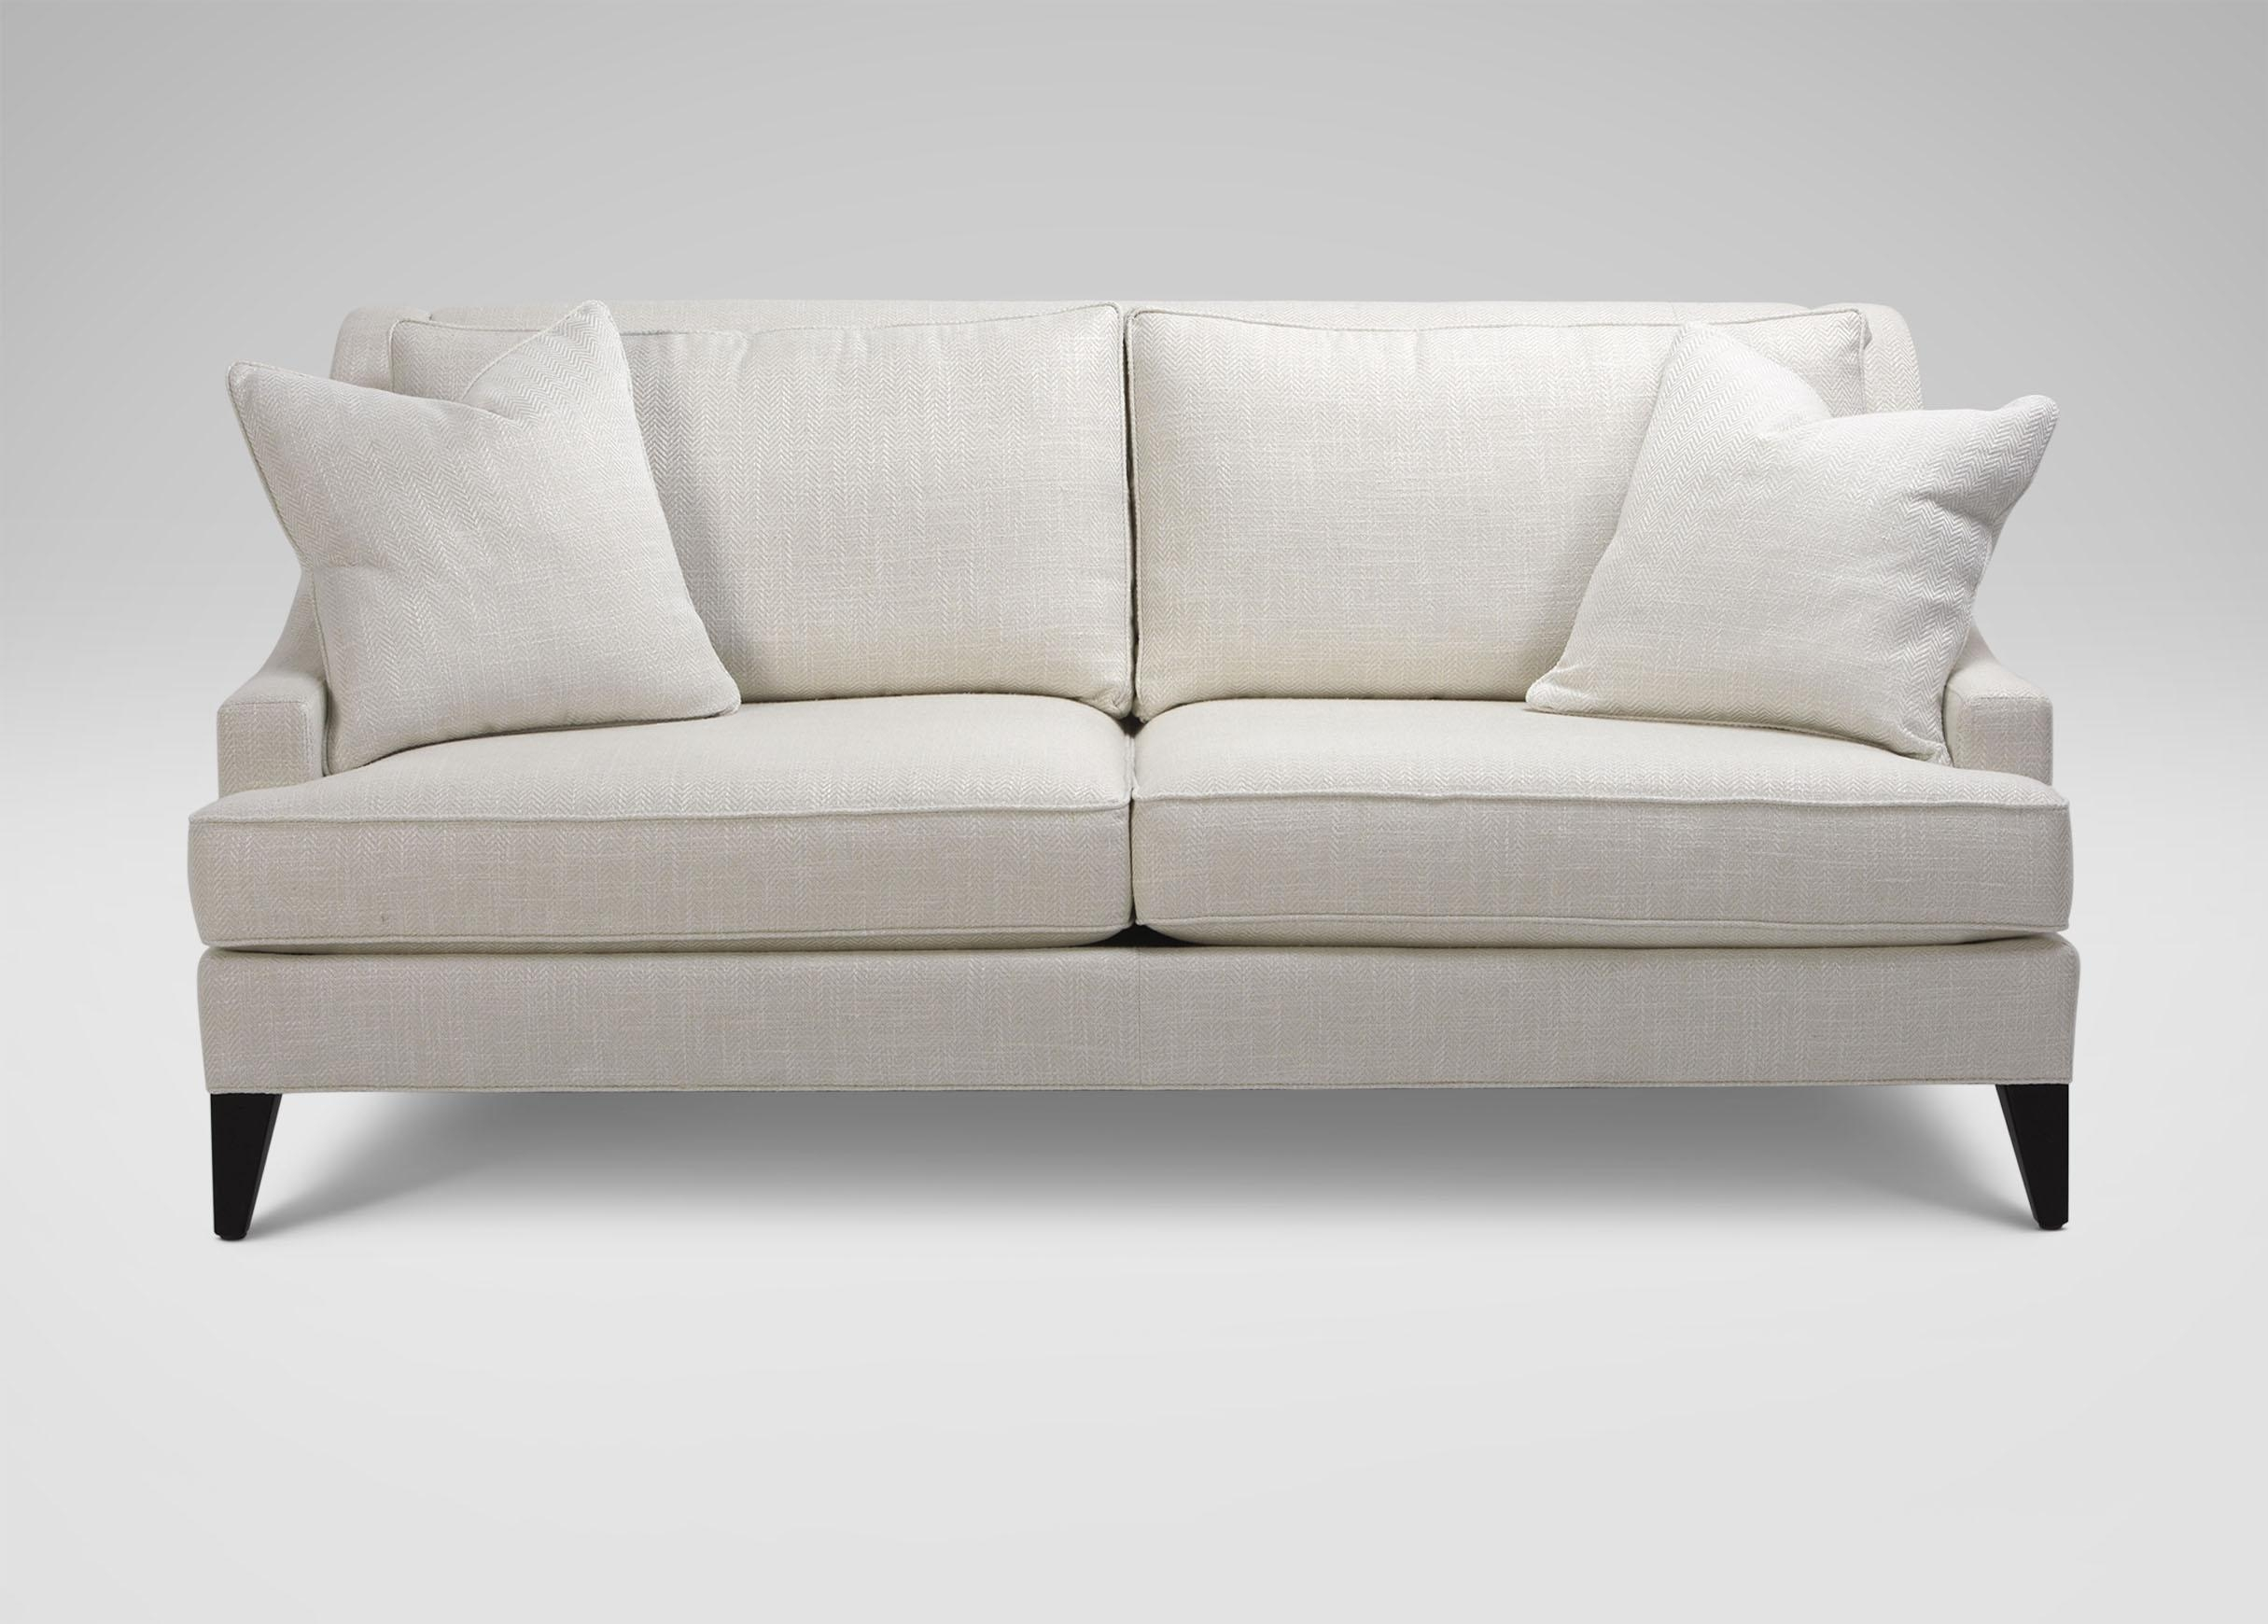 Emerson Sofa | Sofas & Loveseats Pertaining To Ethan Allen Sofas And Chairs (View 2 of 20)